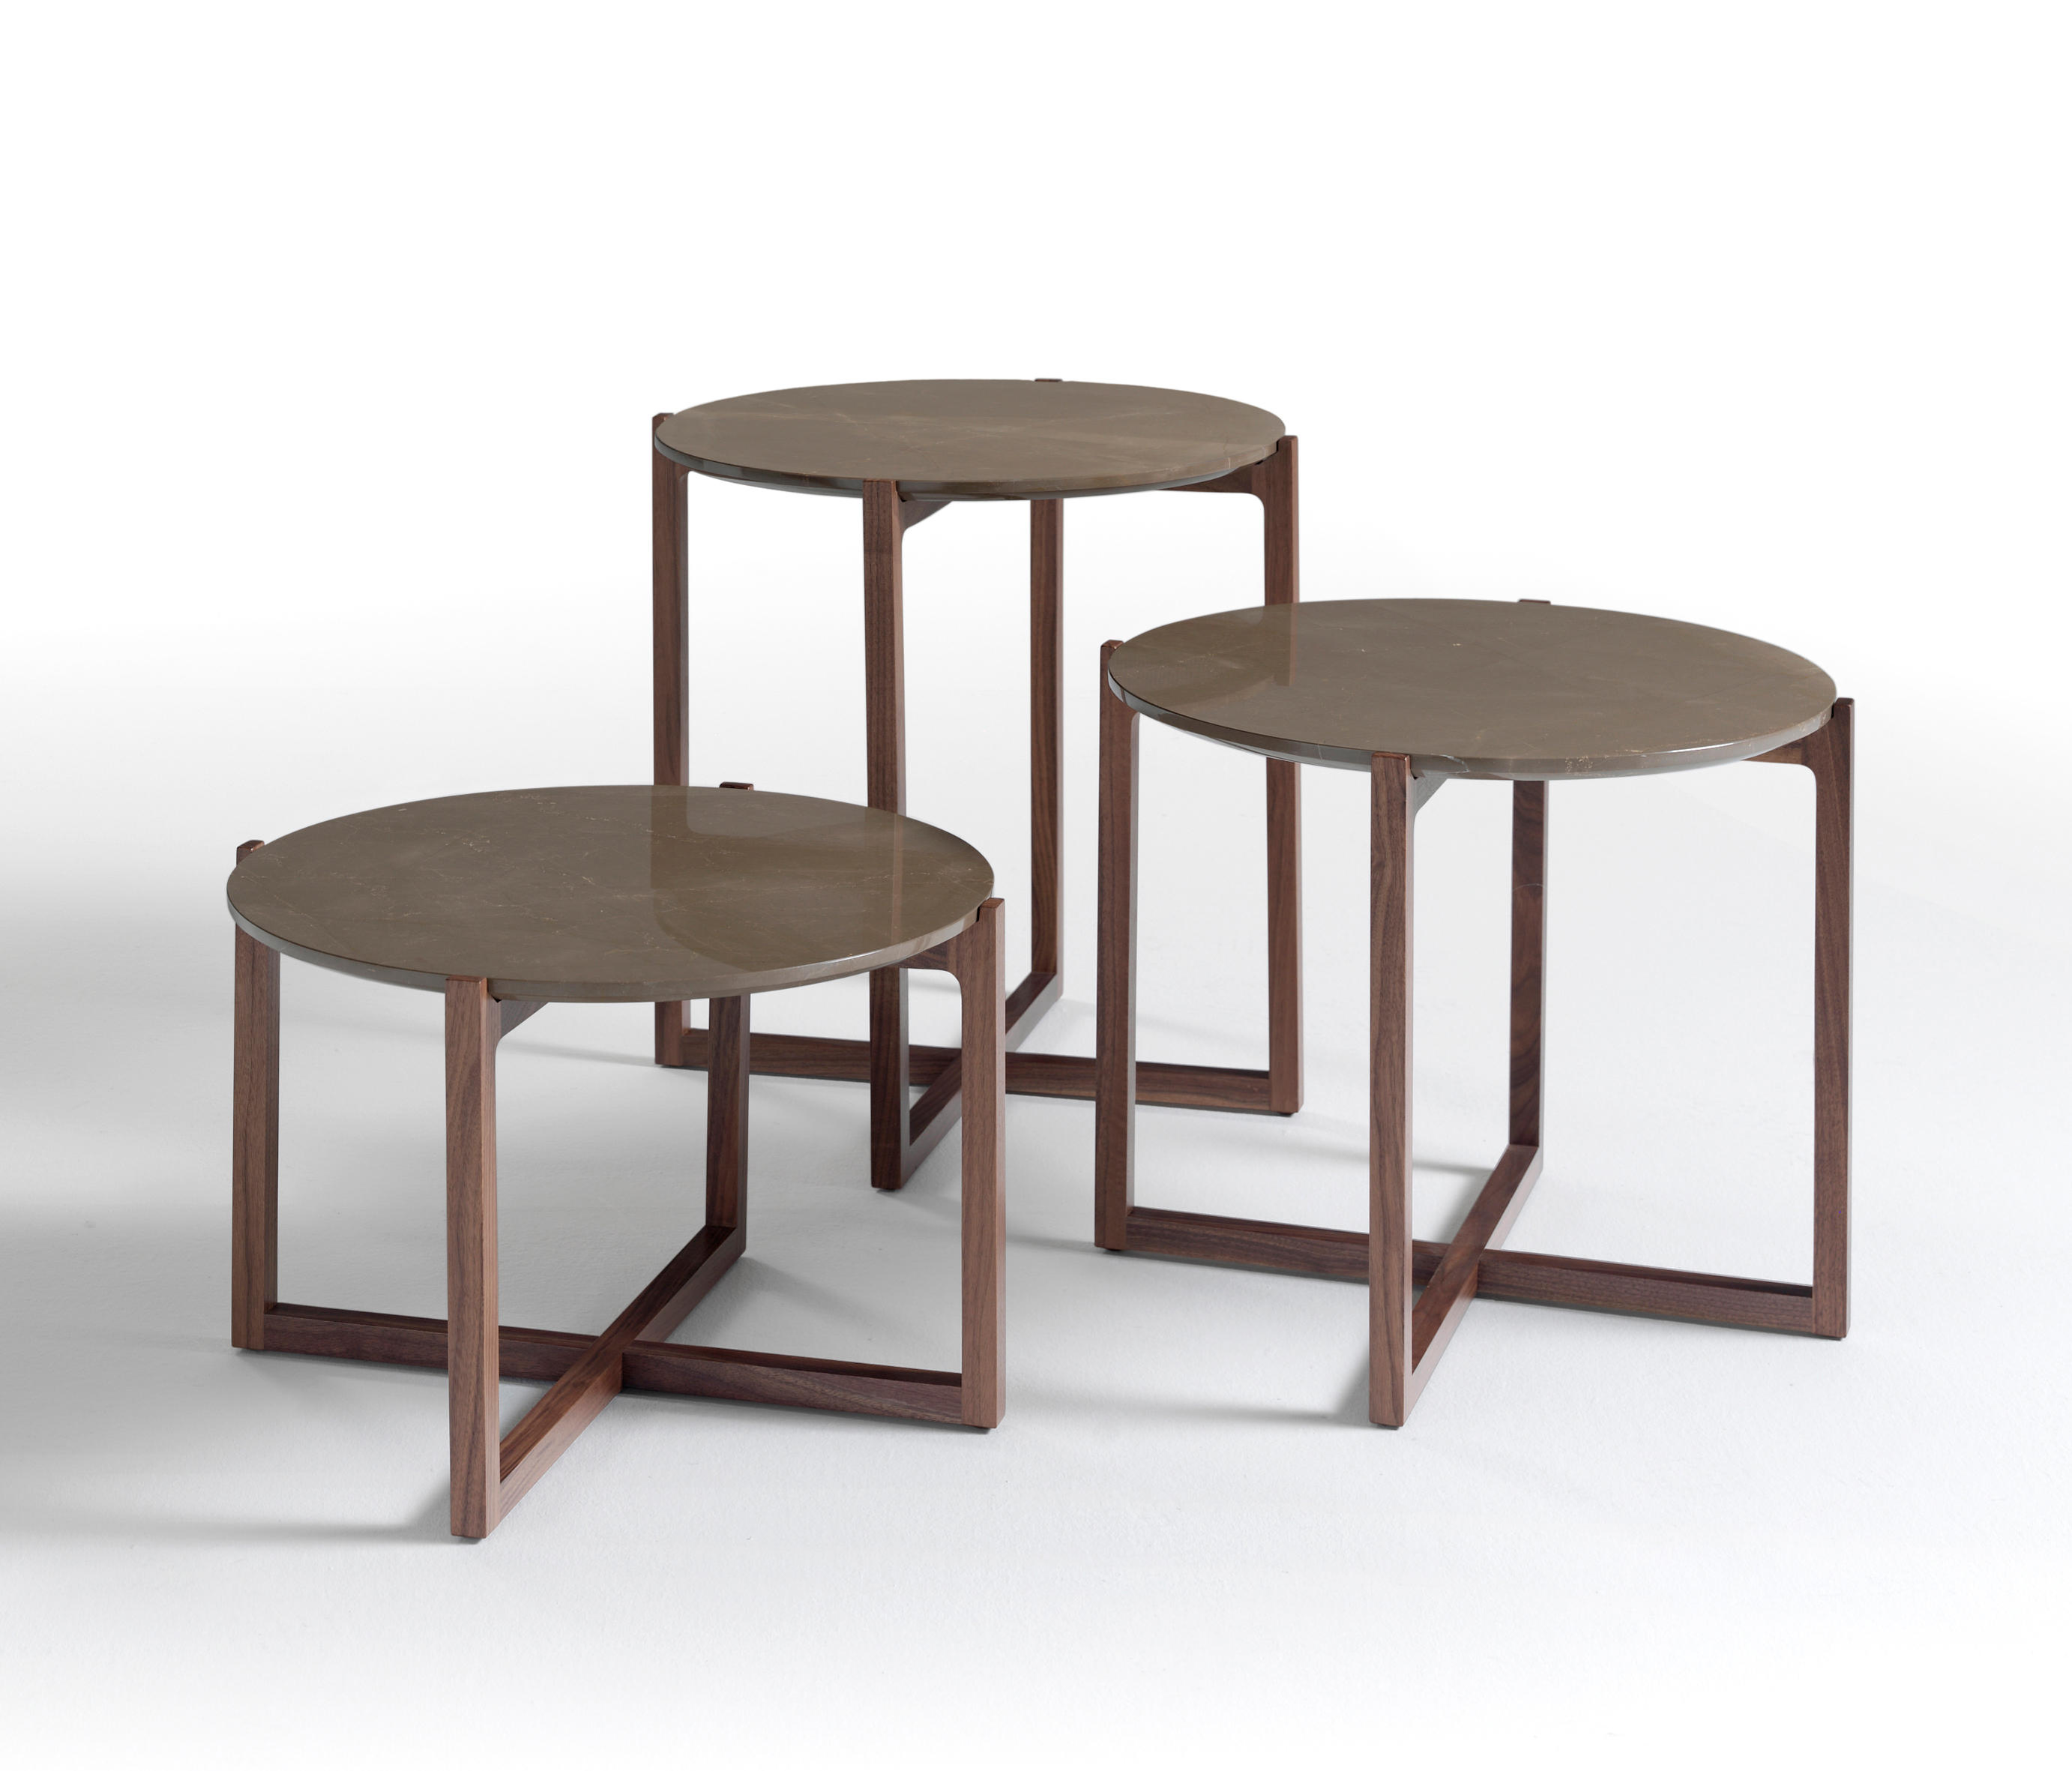 Lotta centro coffee tables from kendo mobiliario - Kendo mobiliario ...